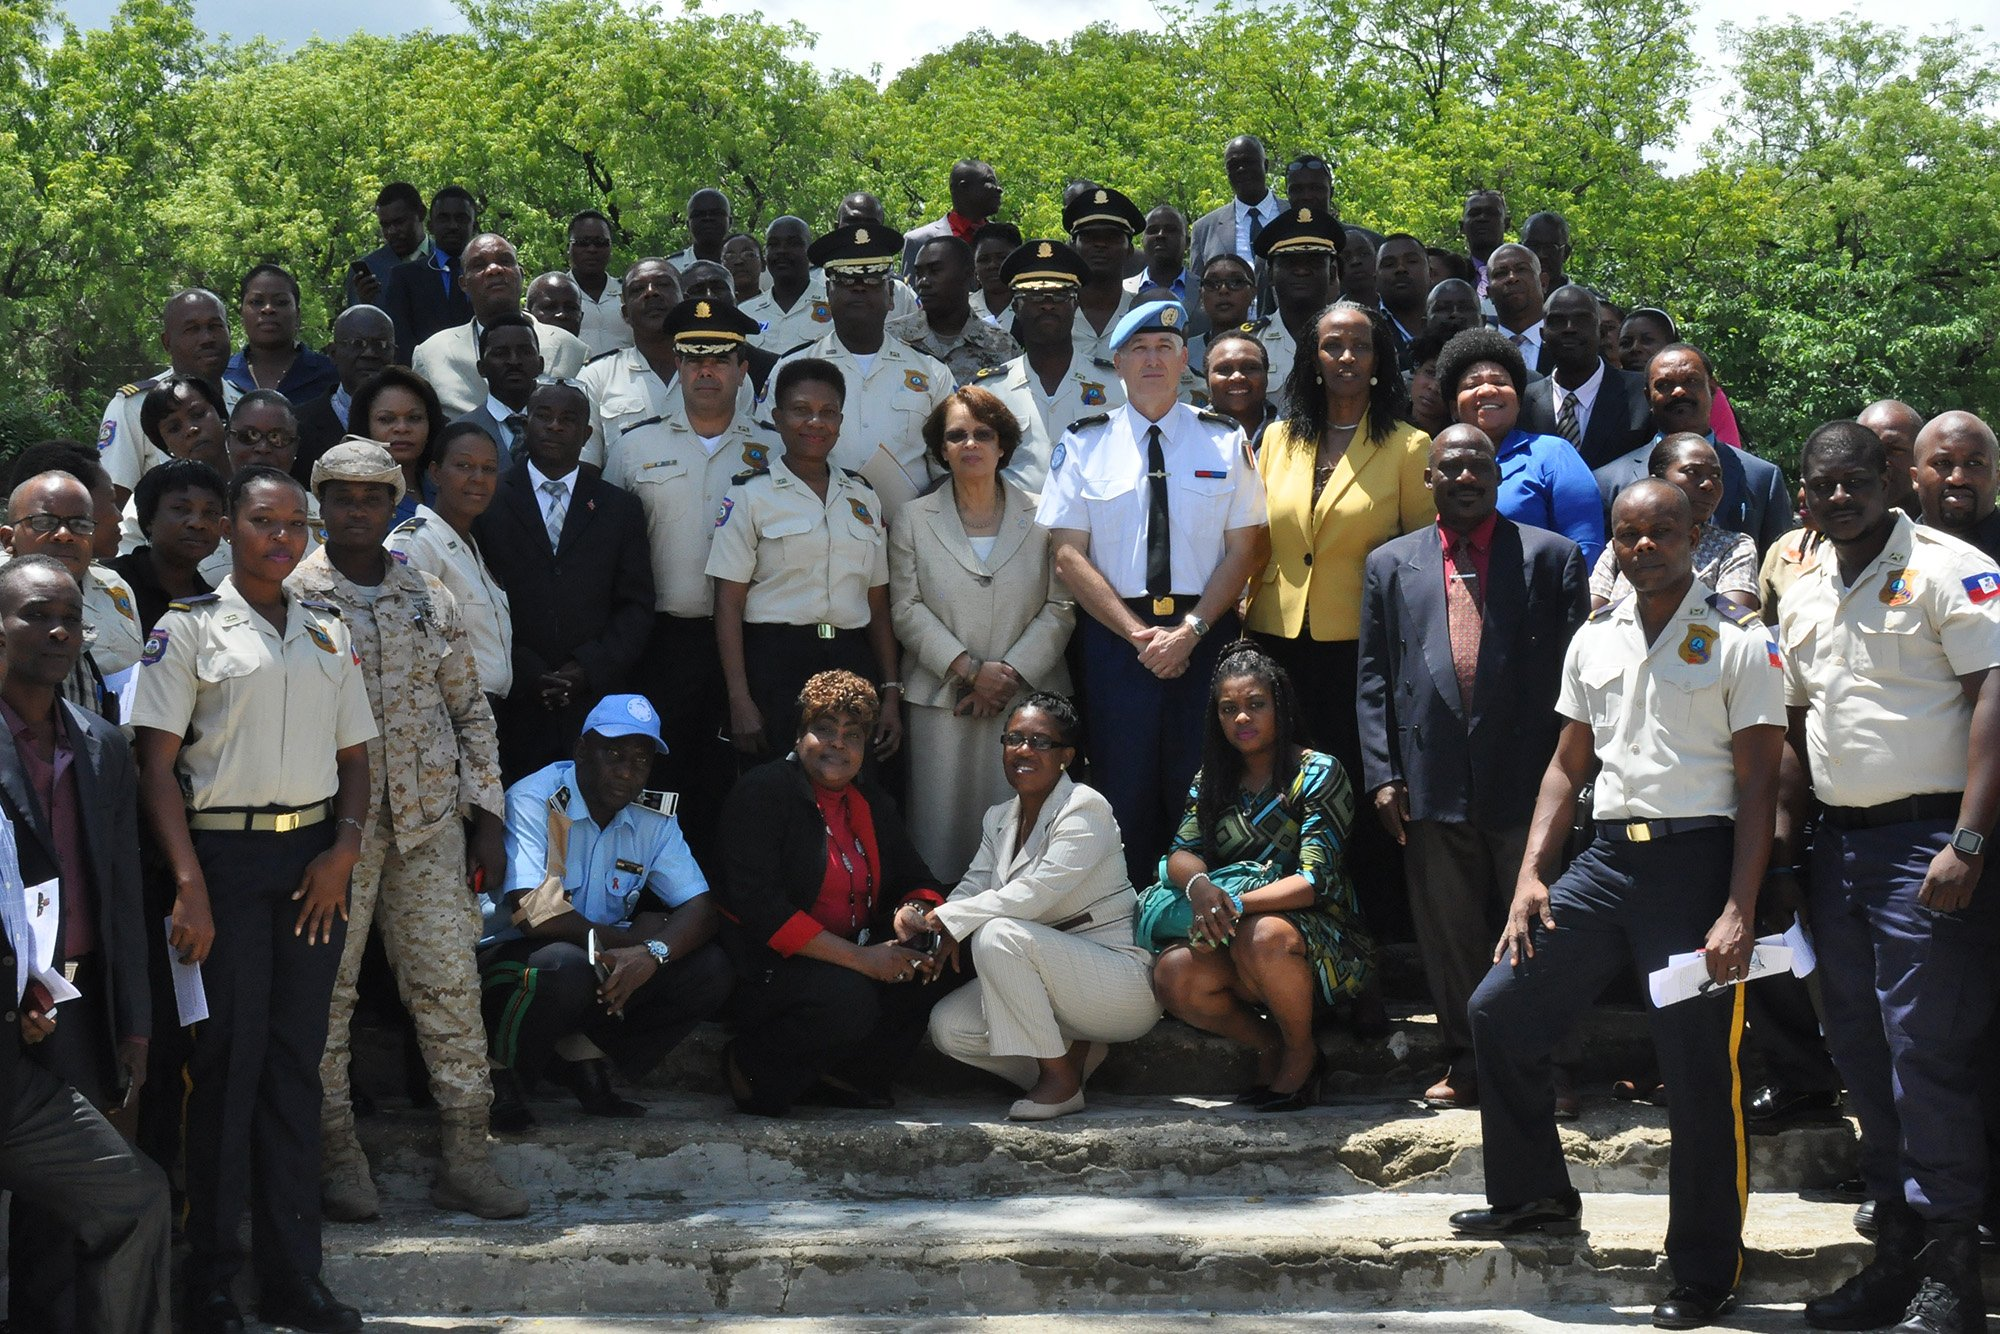 On 13 September, the specialized team conducted a workshop for over 100 law enforcement personnel in Haiti on how to investigate sexual and gender-based violence. Photo: MINUSTAH/ Ange Sebutege